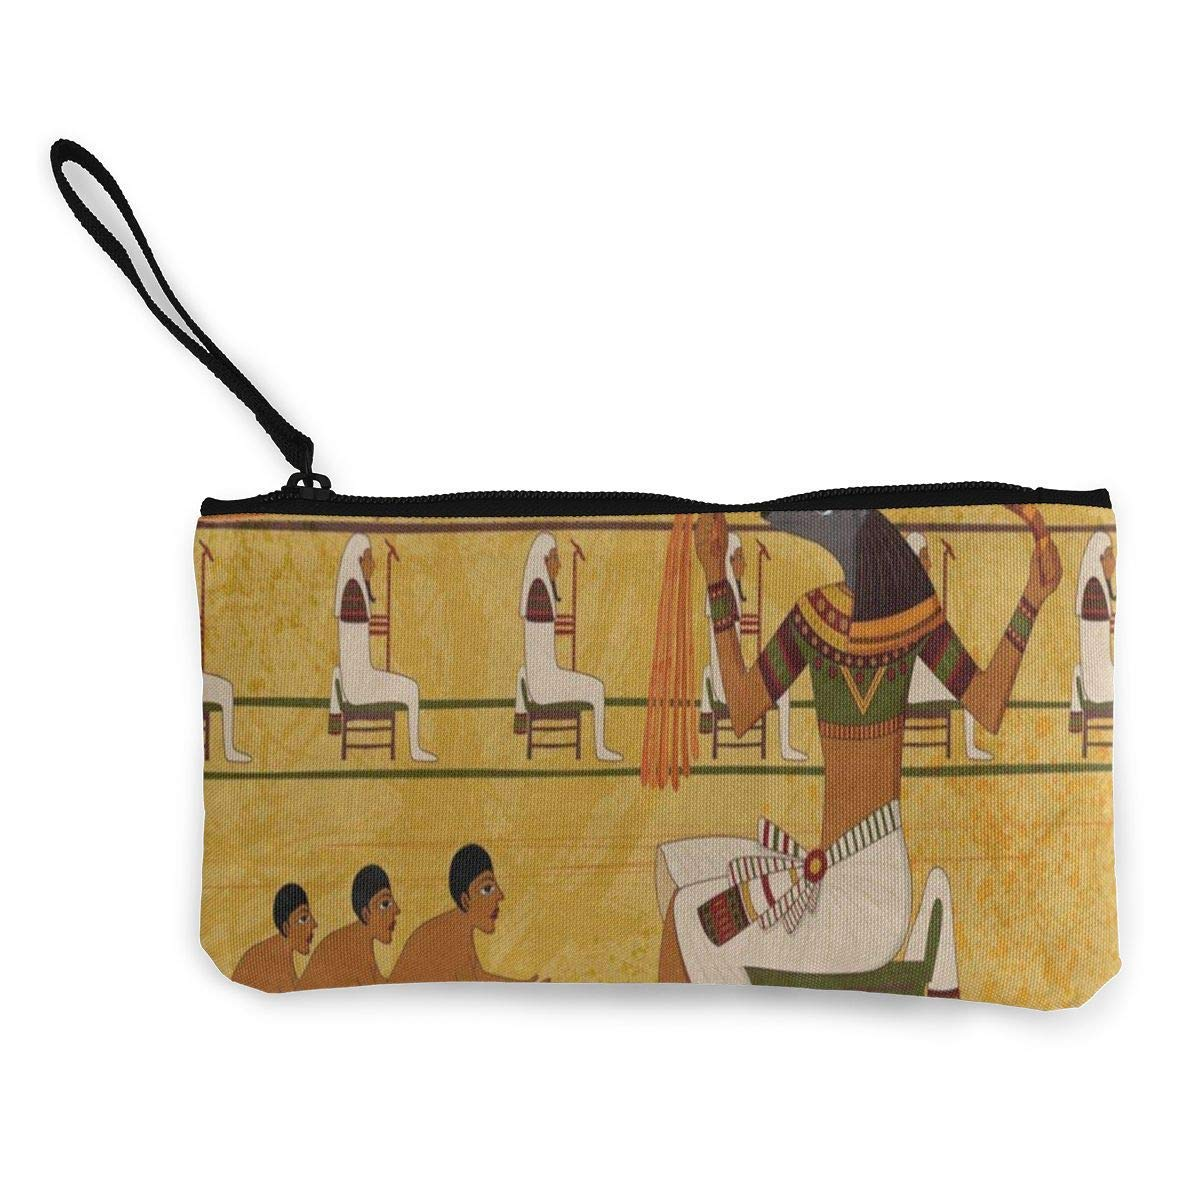 hgfdhfgjrfj Canvas Coin Purse Old Antique Egyptian Culture Customs Zipper Pouch Wallet For Cash Bank Car Passport